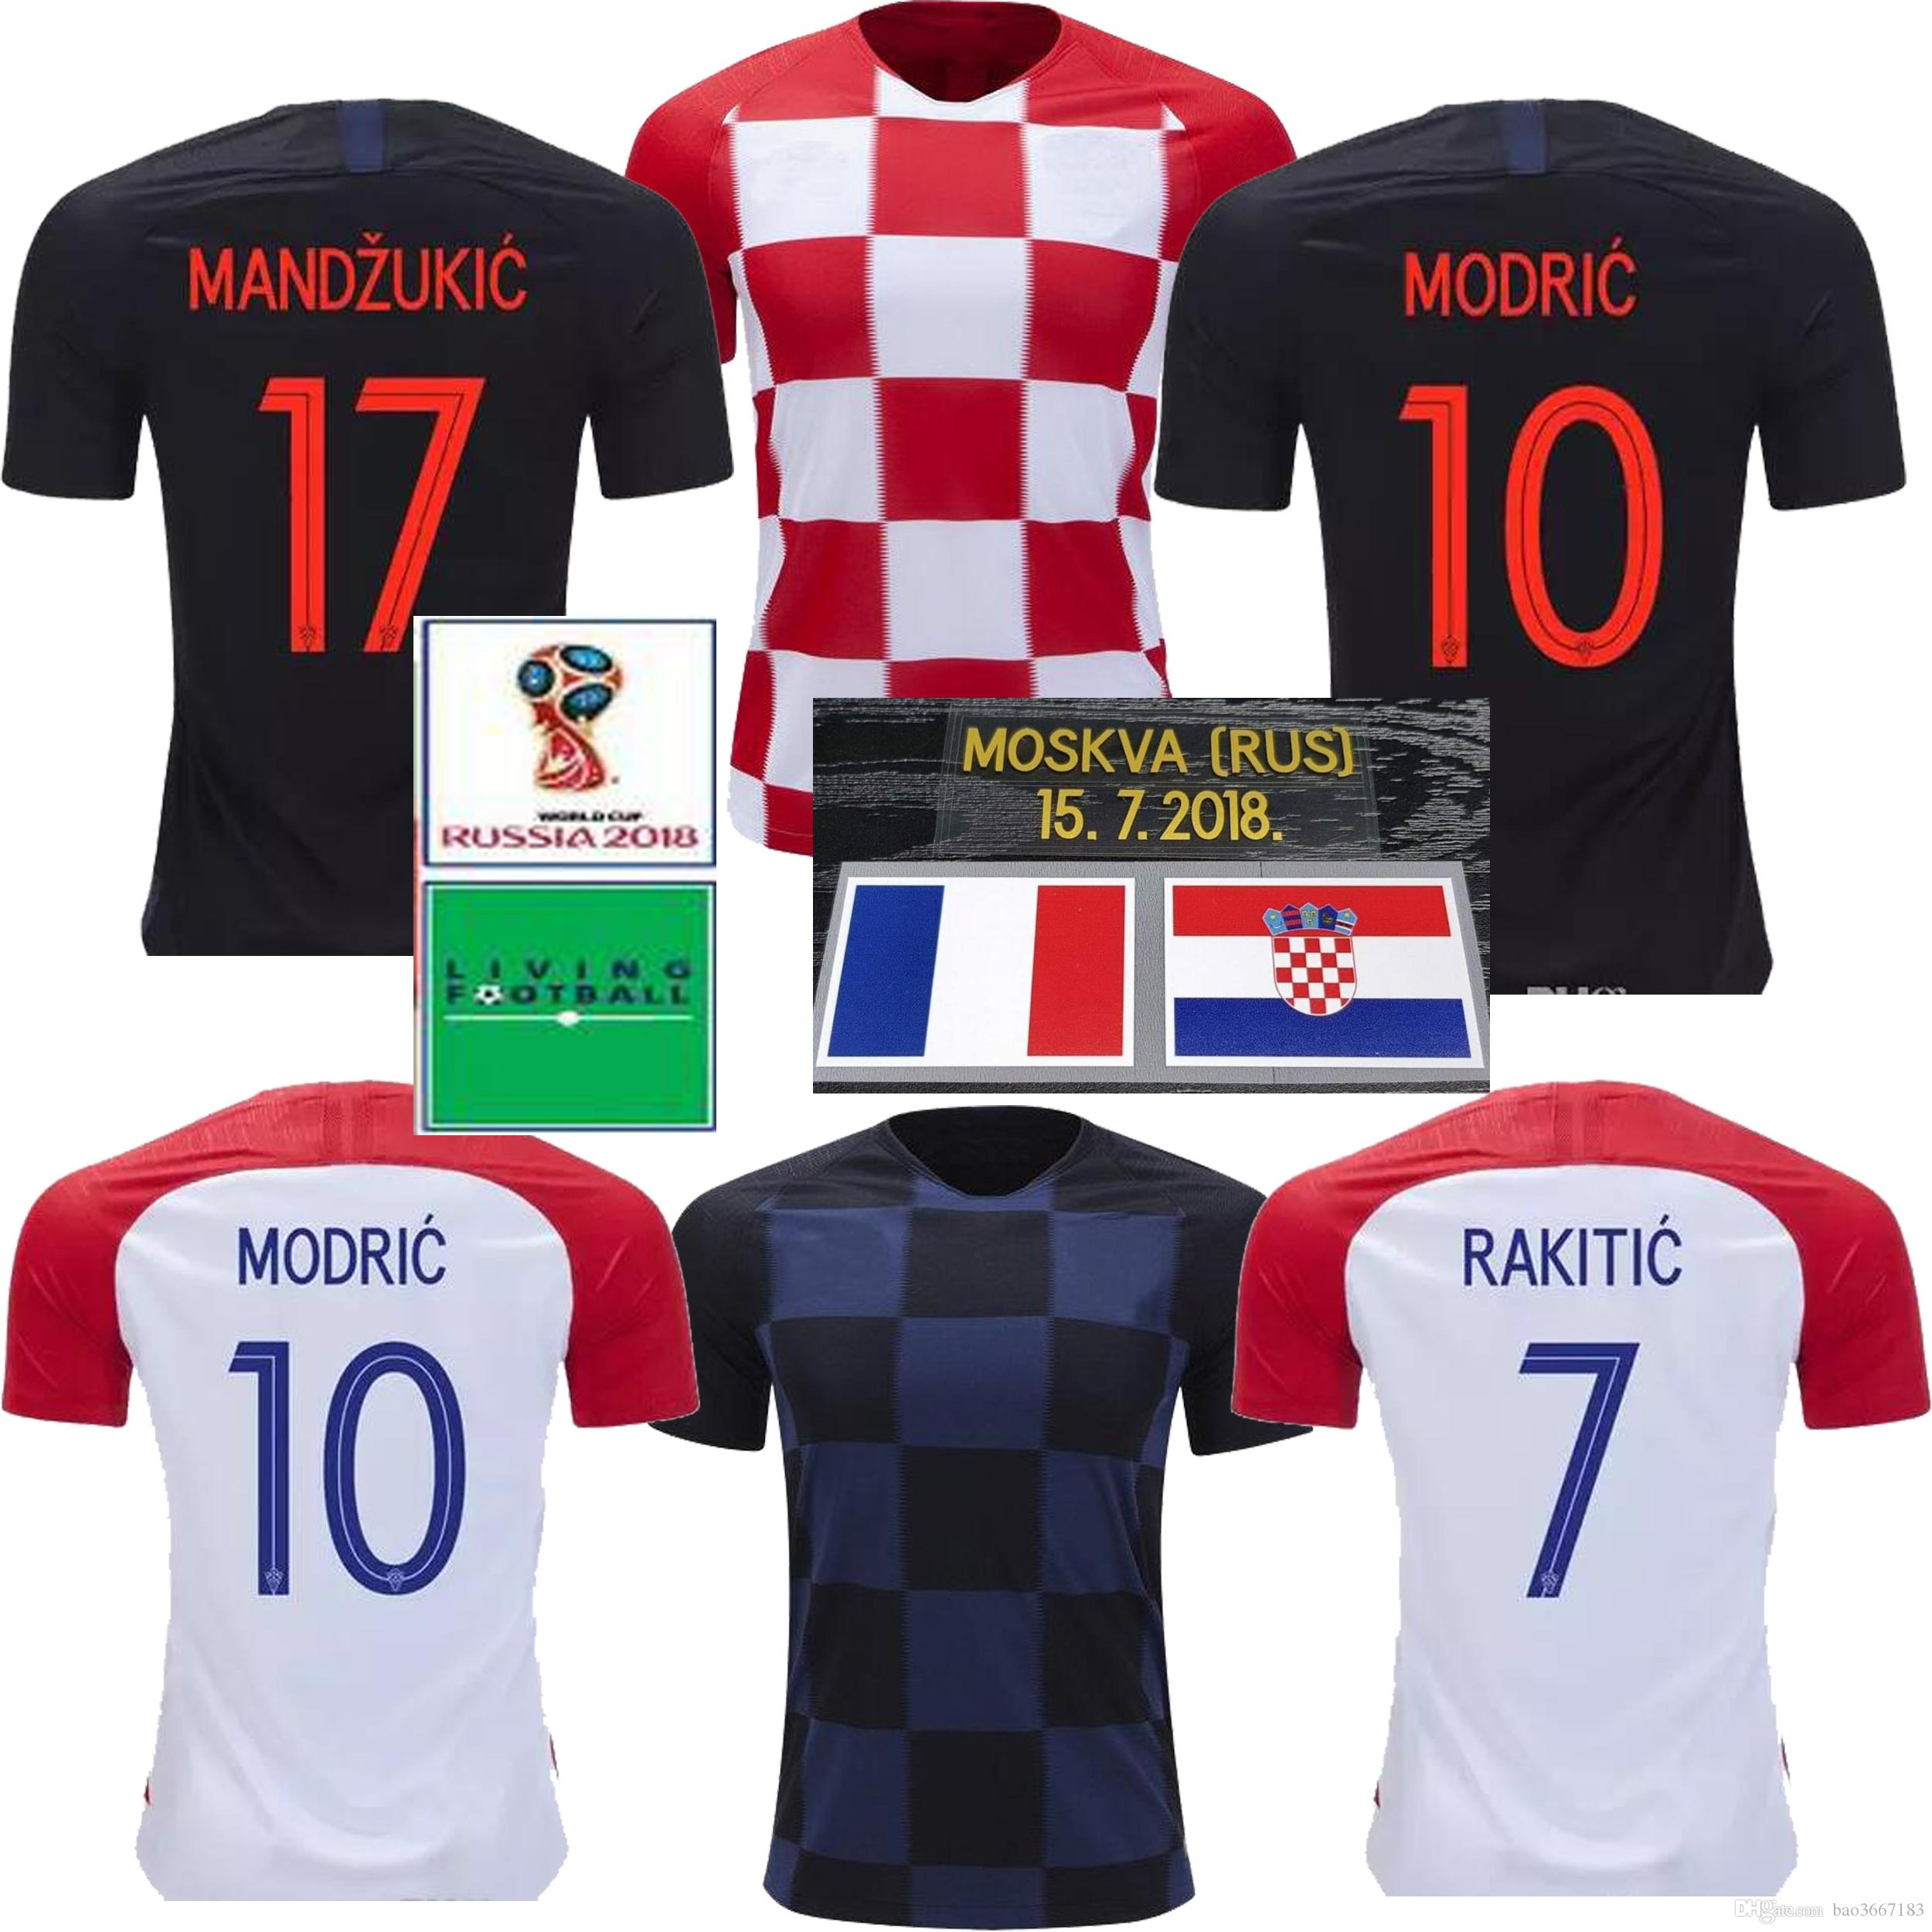 e47bbf547d8 ... czech get 2018 world cup modric mandzukic rakitic croatia home soccer  jerseys 2018 world cup camisetas